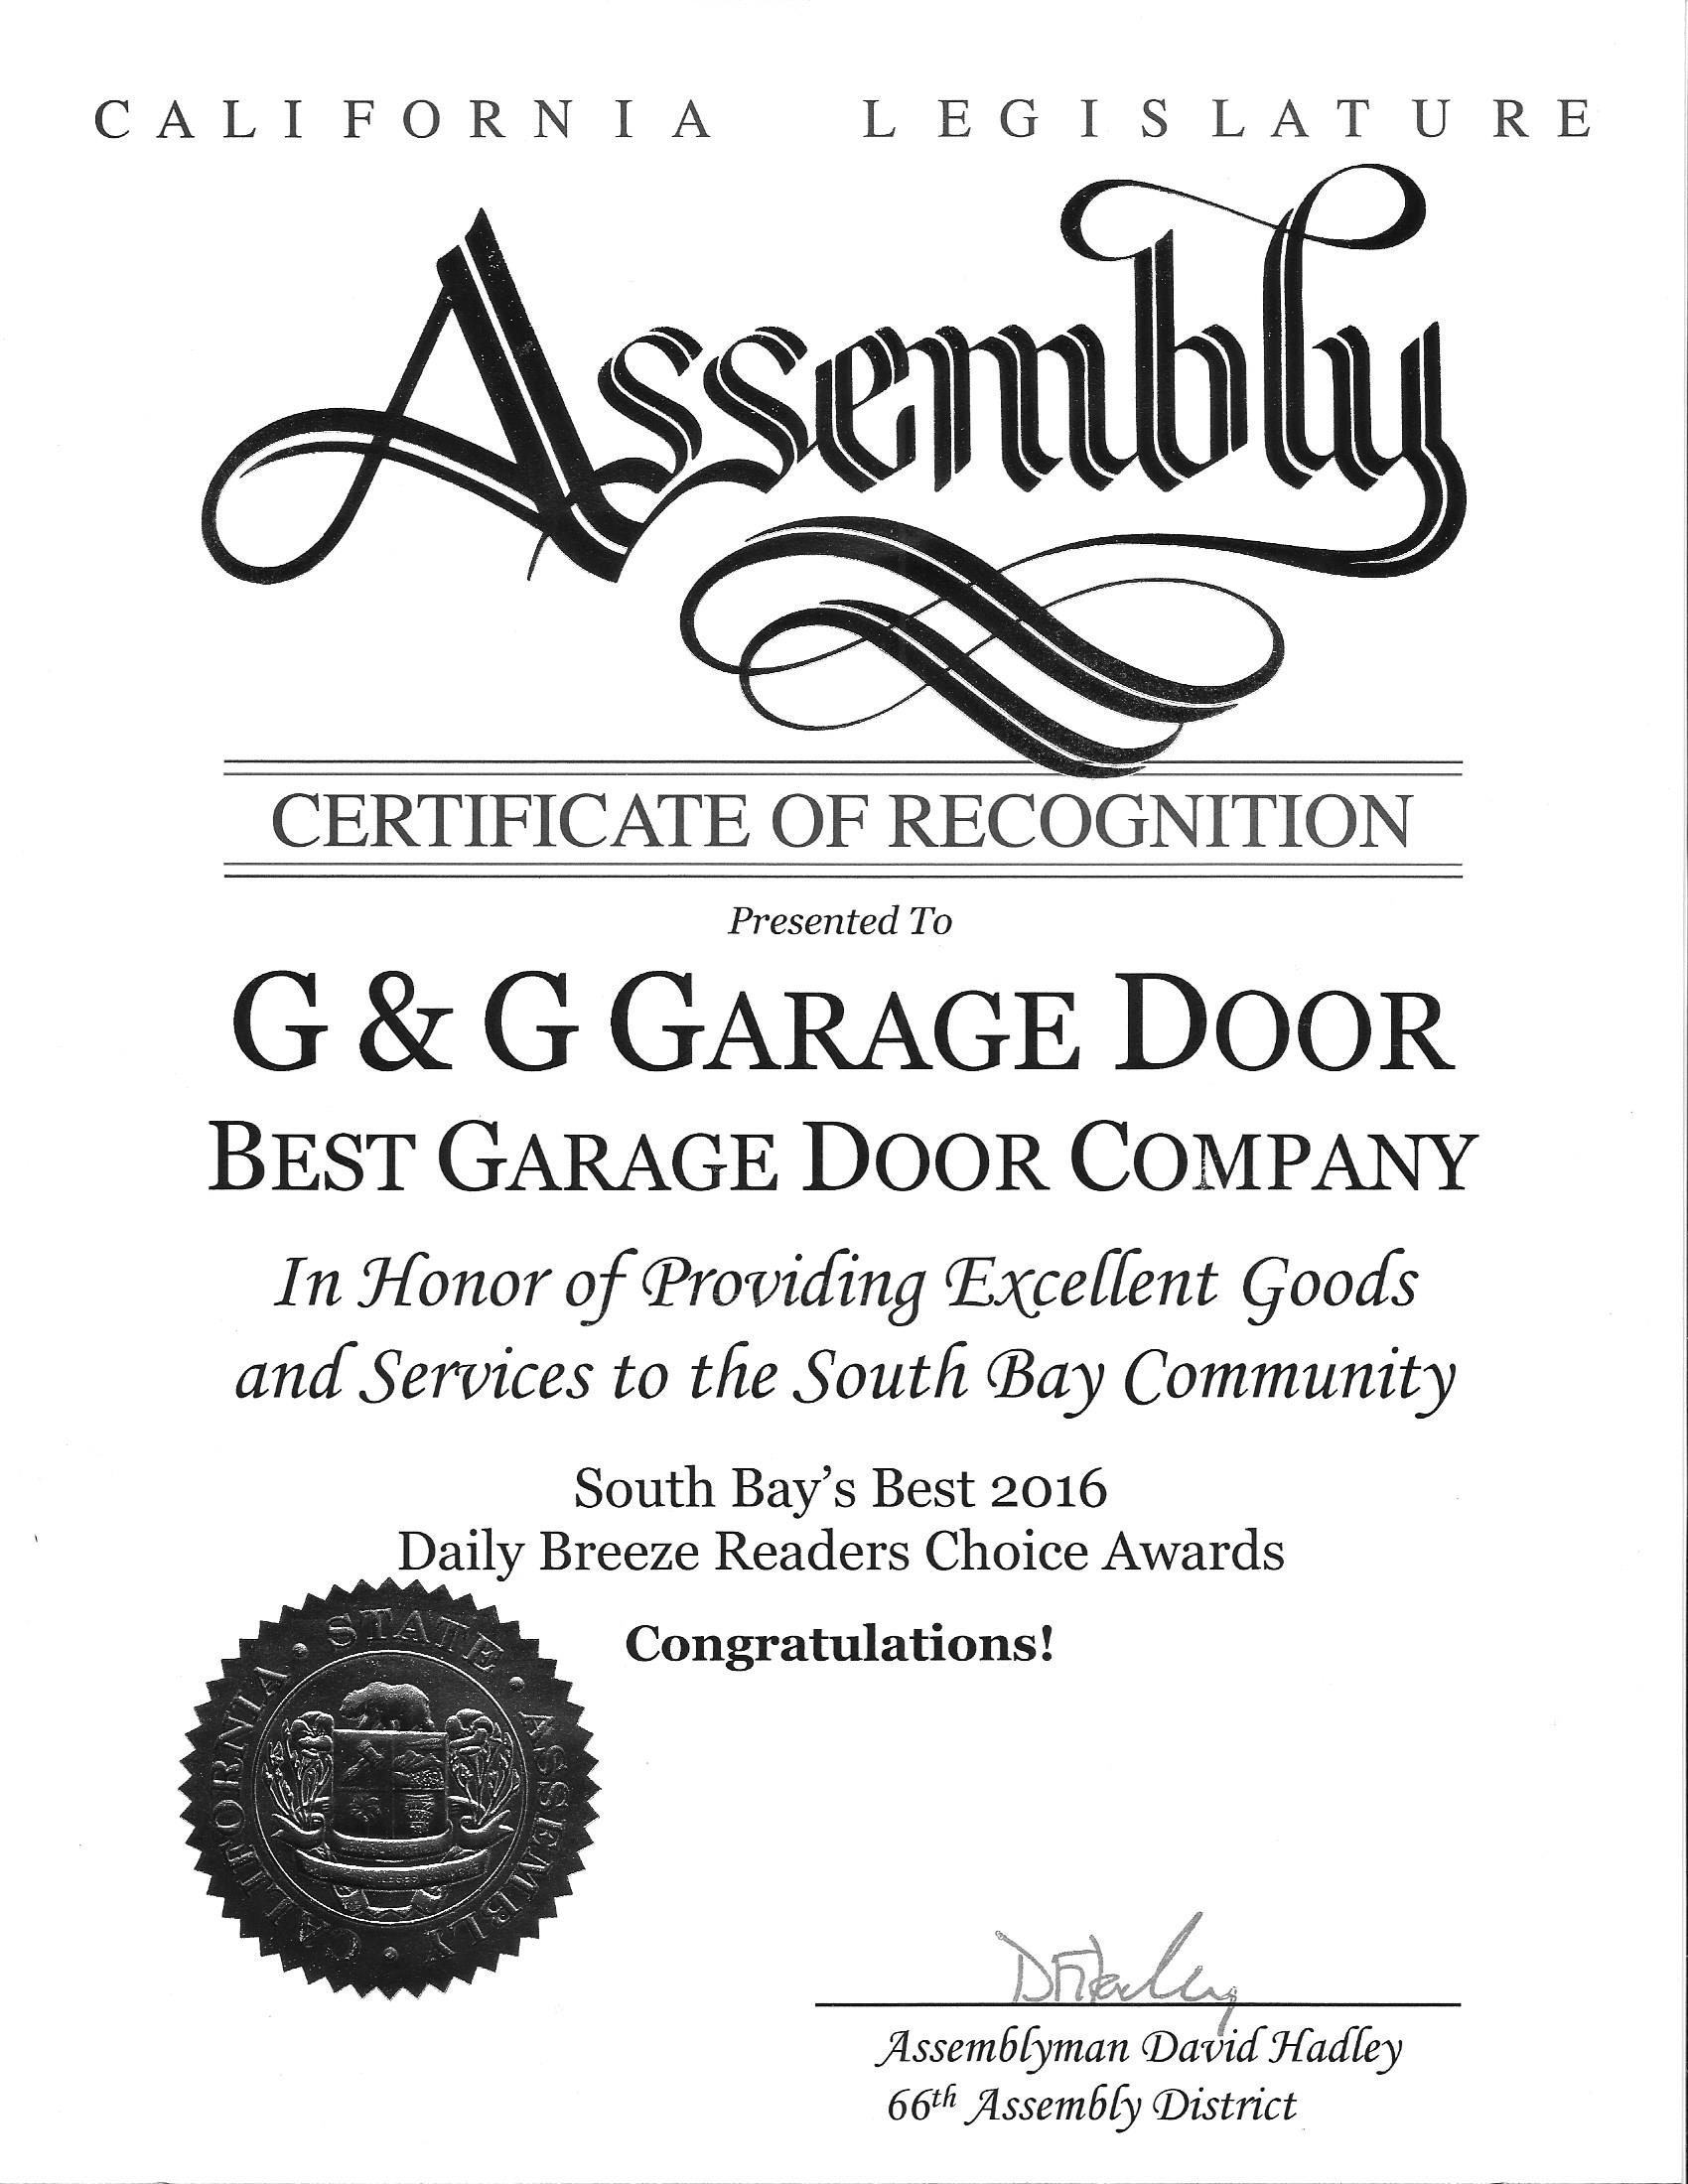 G&G Garage Door, Honored to be awarded the Best Garage Door Company